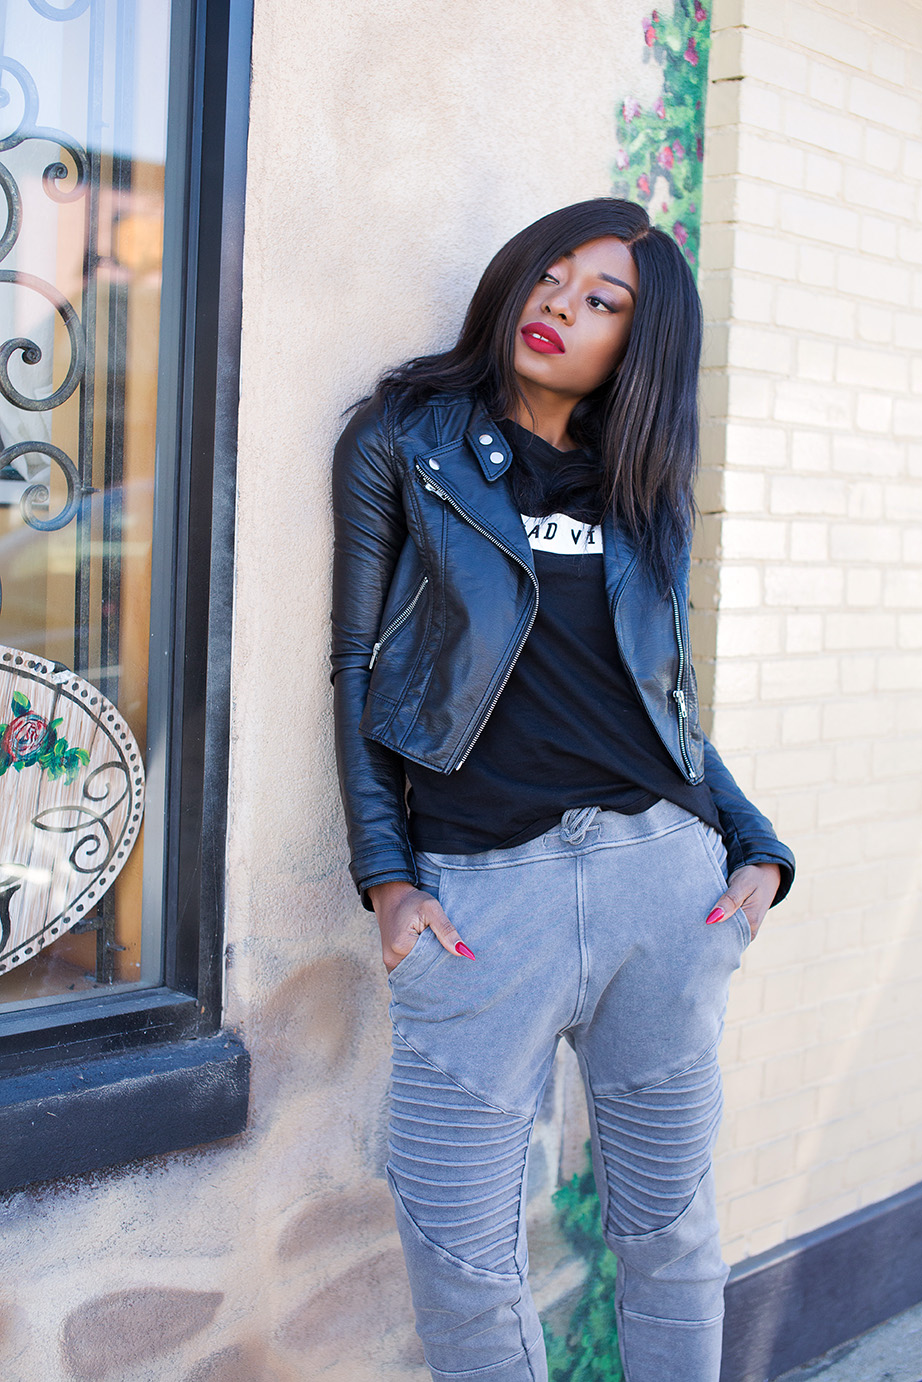 Sweatpants and leather jacket, www.jadore-fashion.com